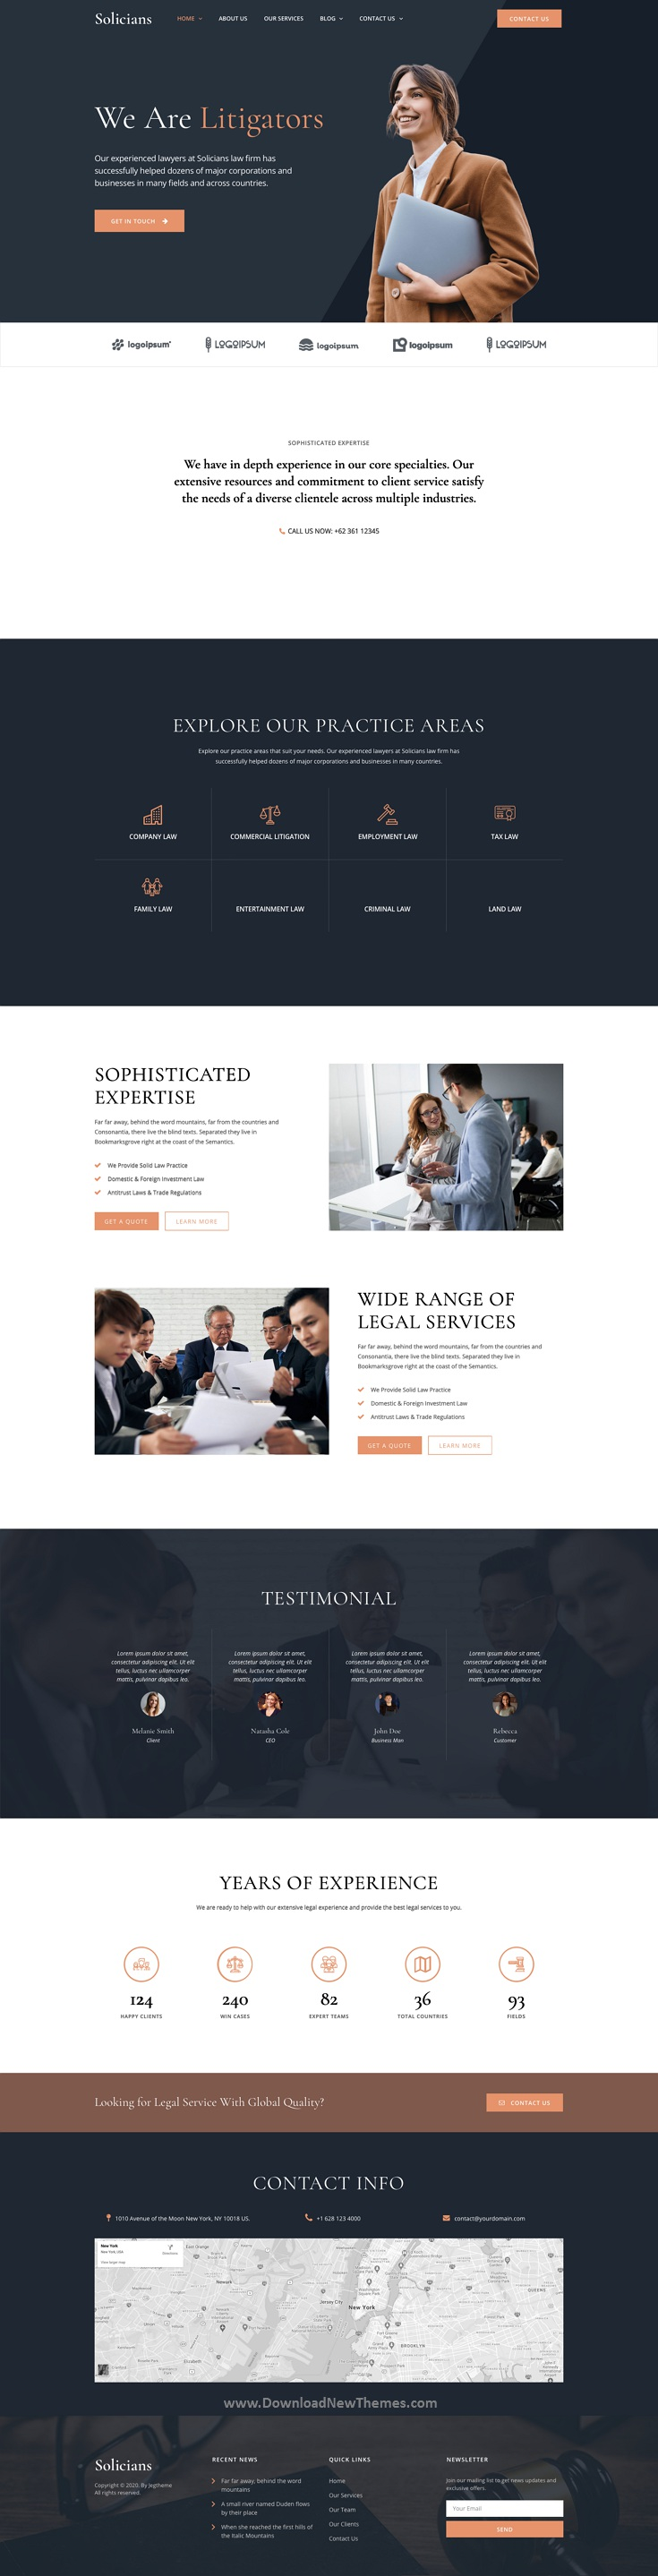 Attorney Law Firm Website Template